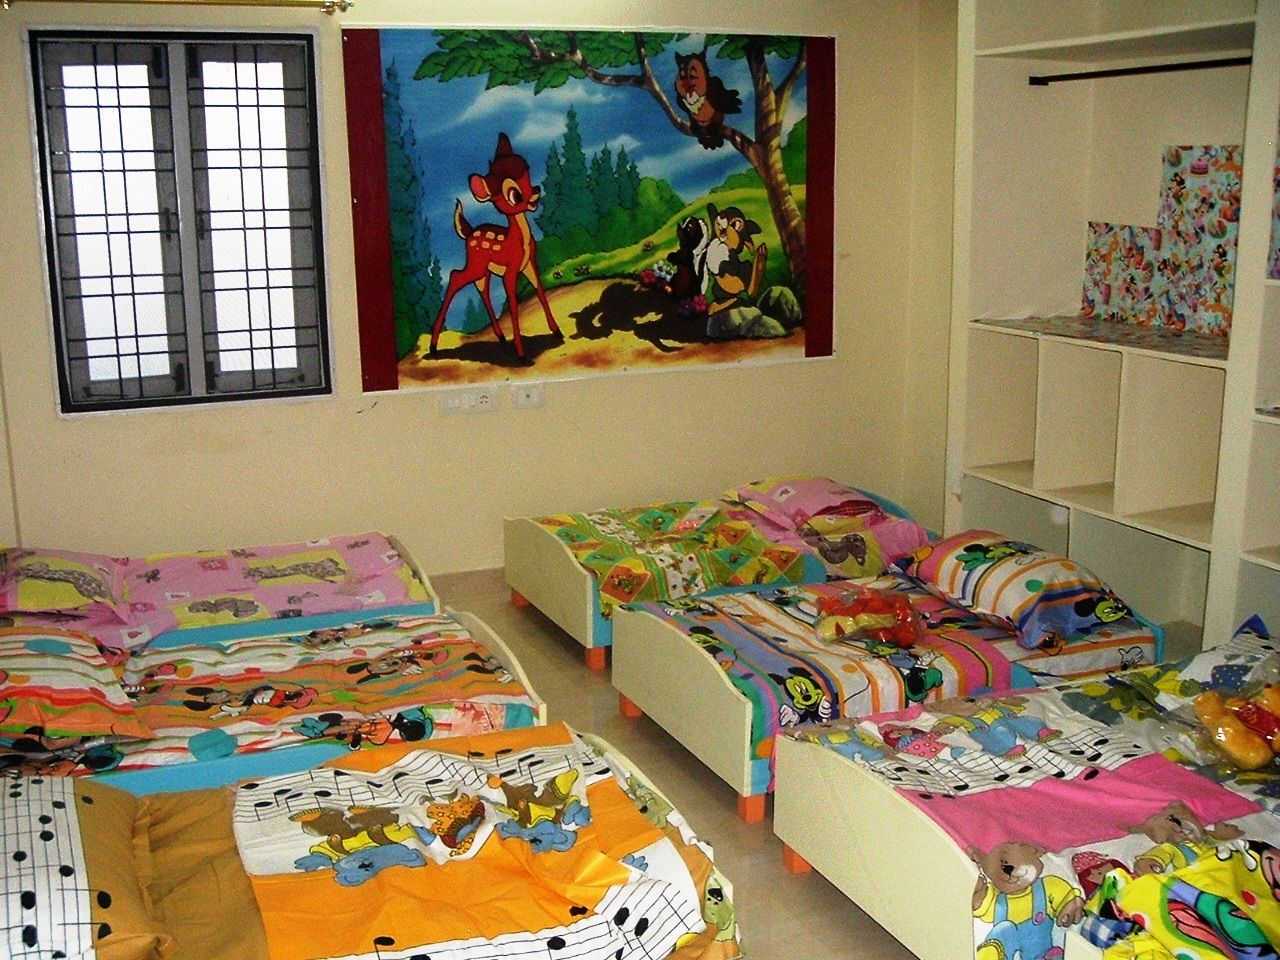 Pin by Evelyn Iravuhah on Daycare Centre   Daycare rooms ...